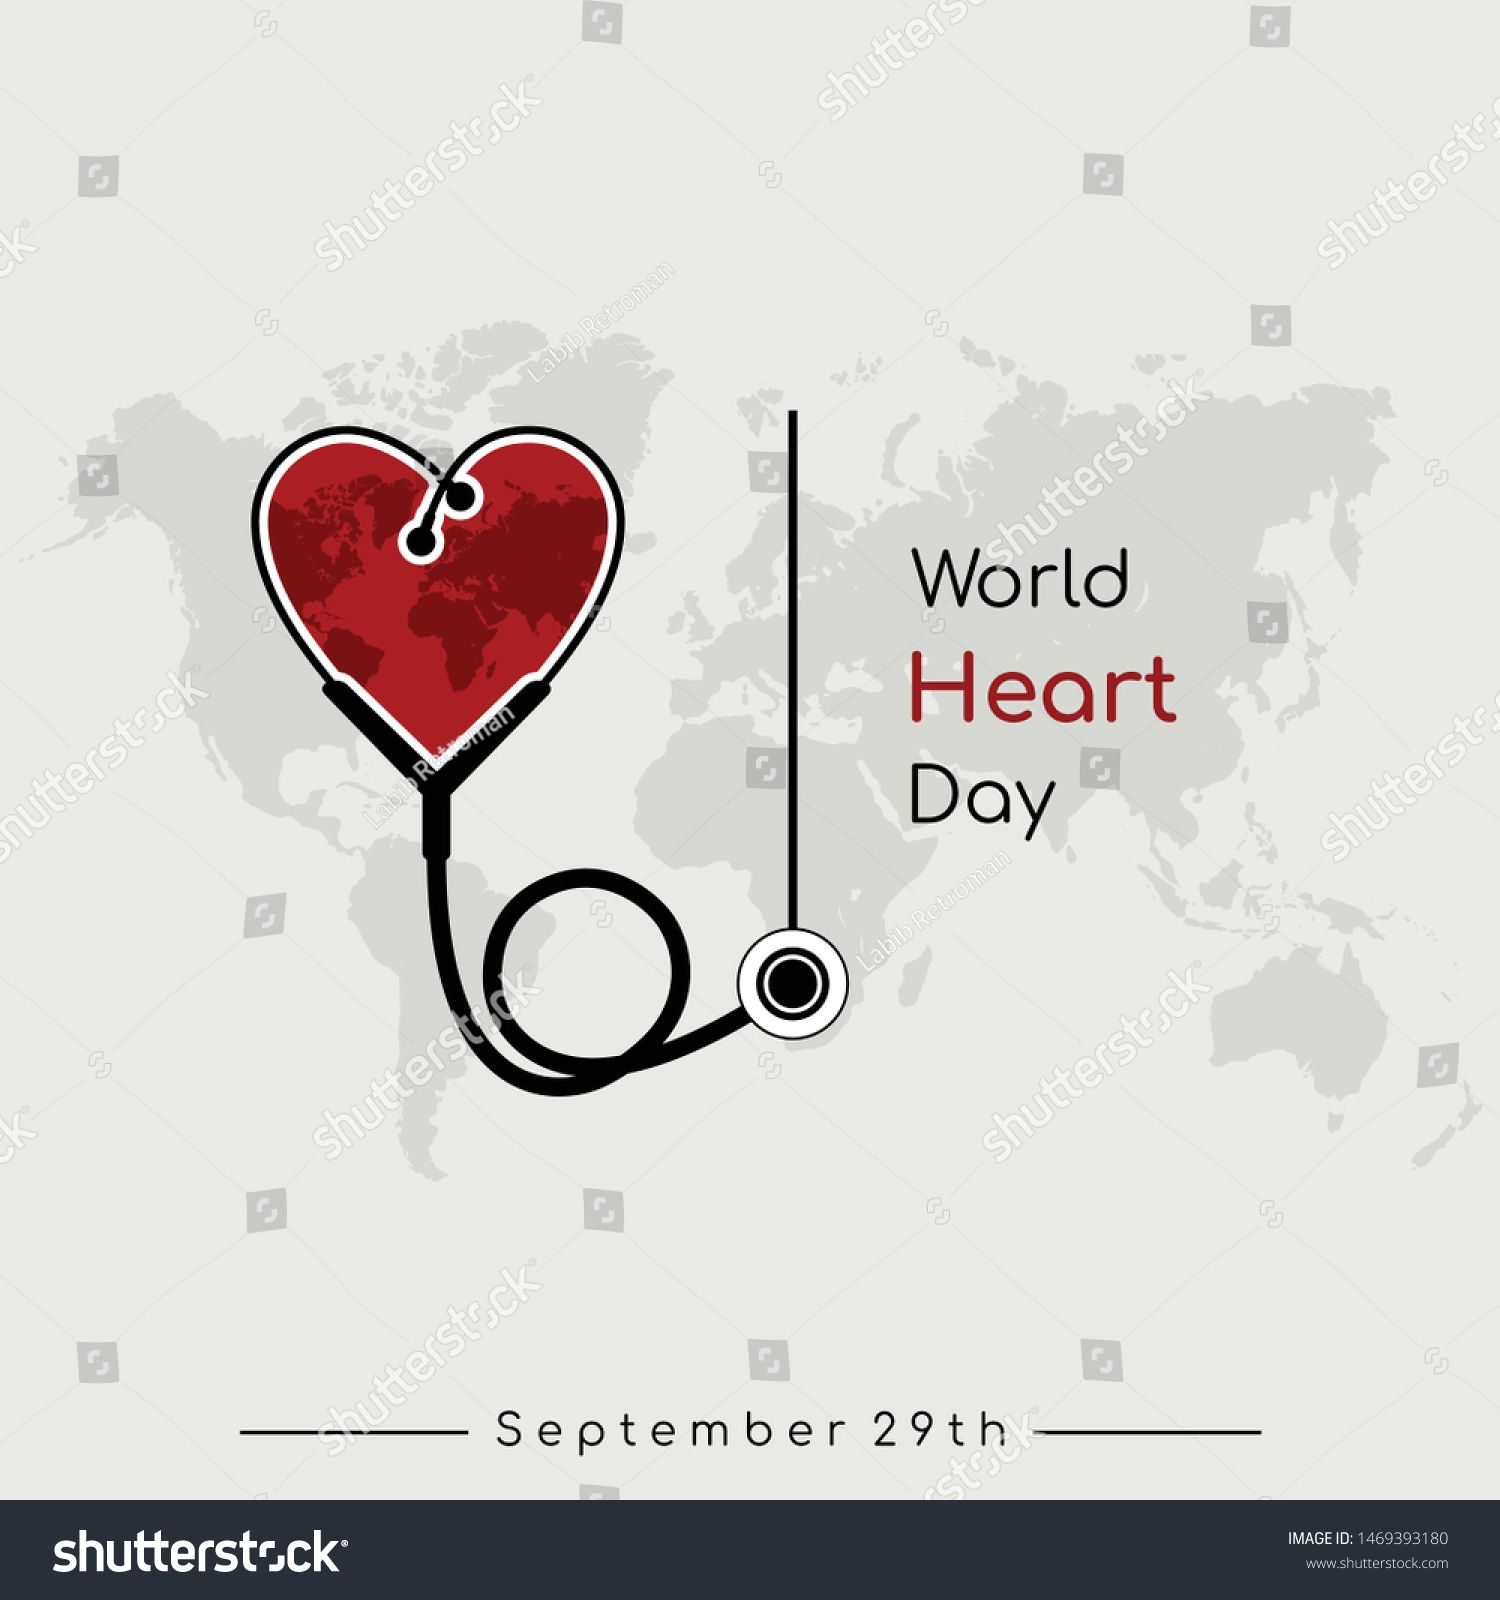 World Heart Day vector design with Heart stethoscope